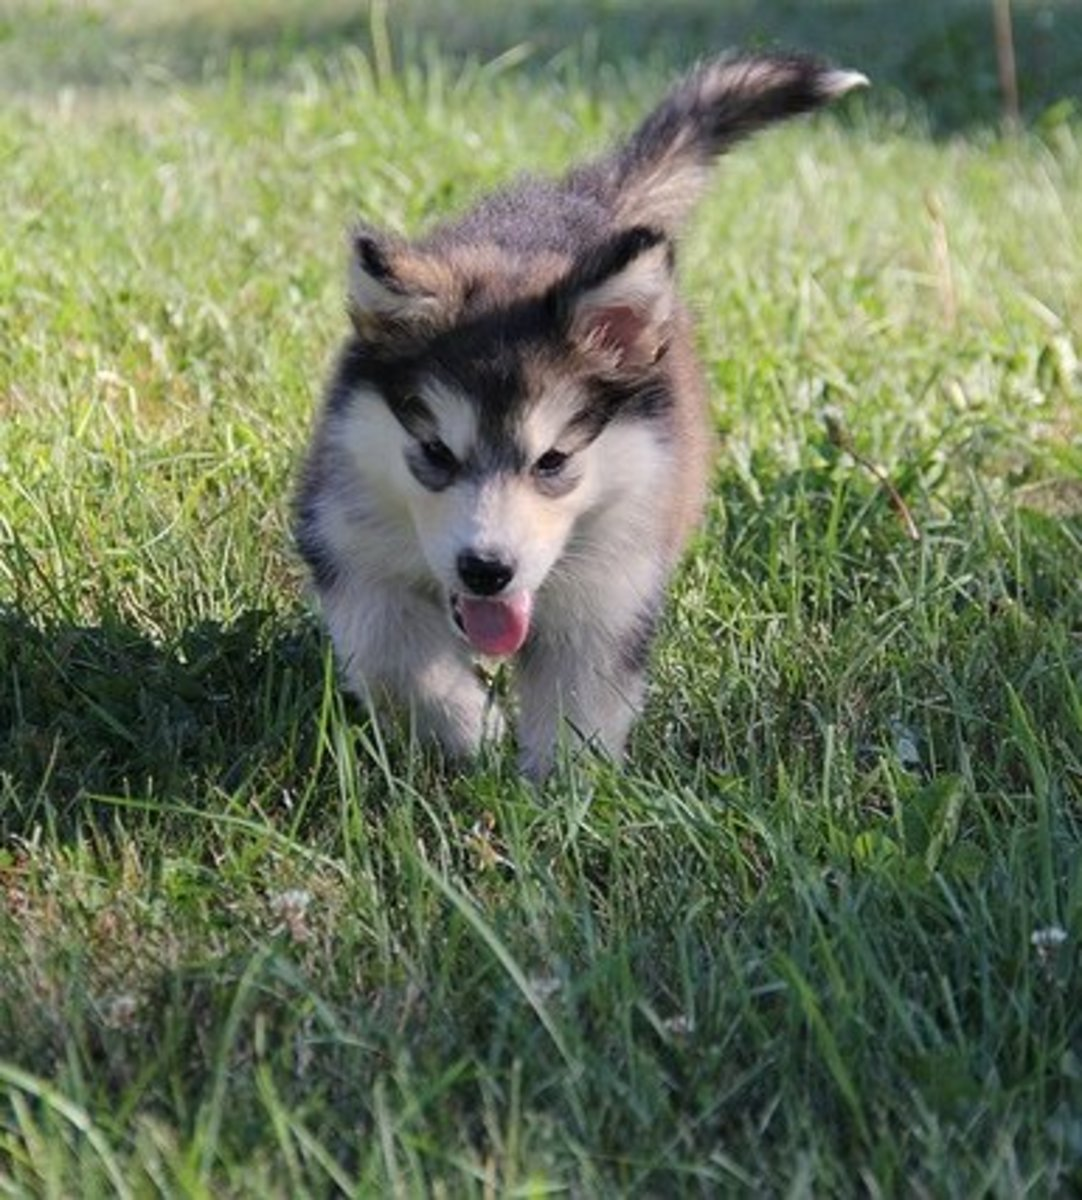 The Alaskan Malamute is another sled dog who does not stink.